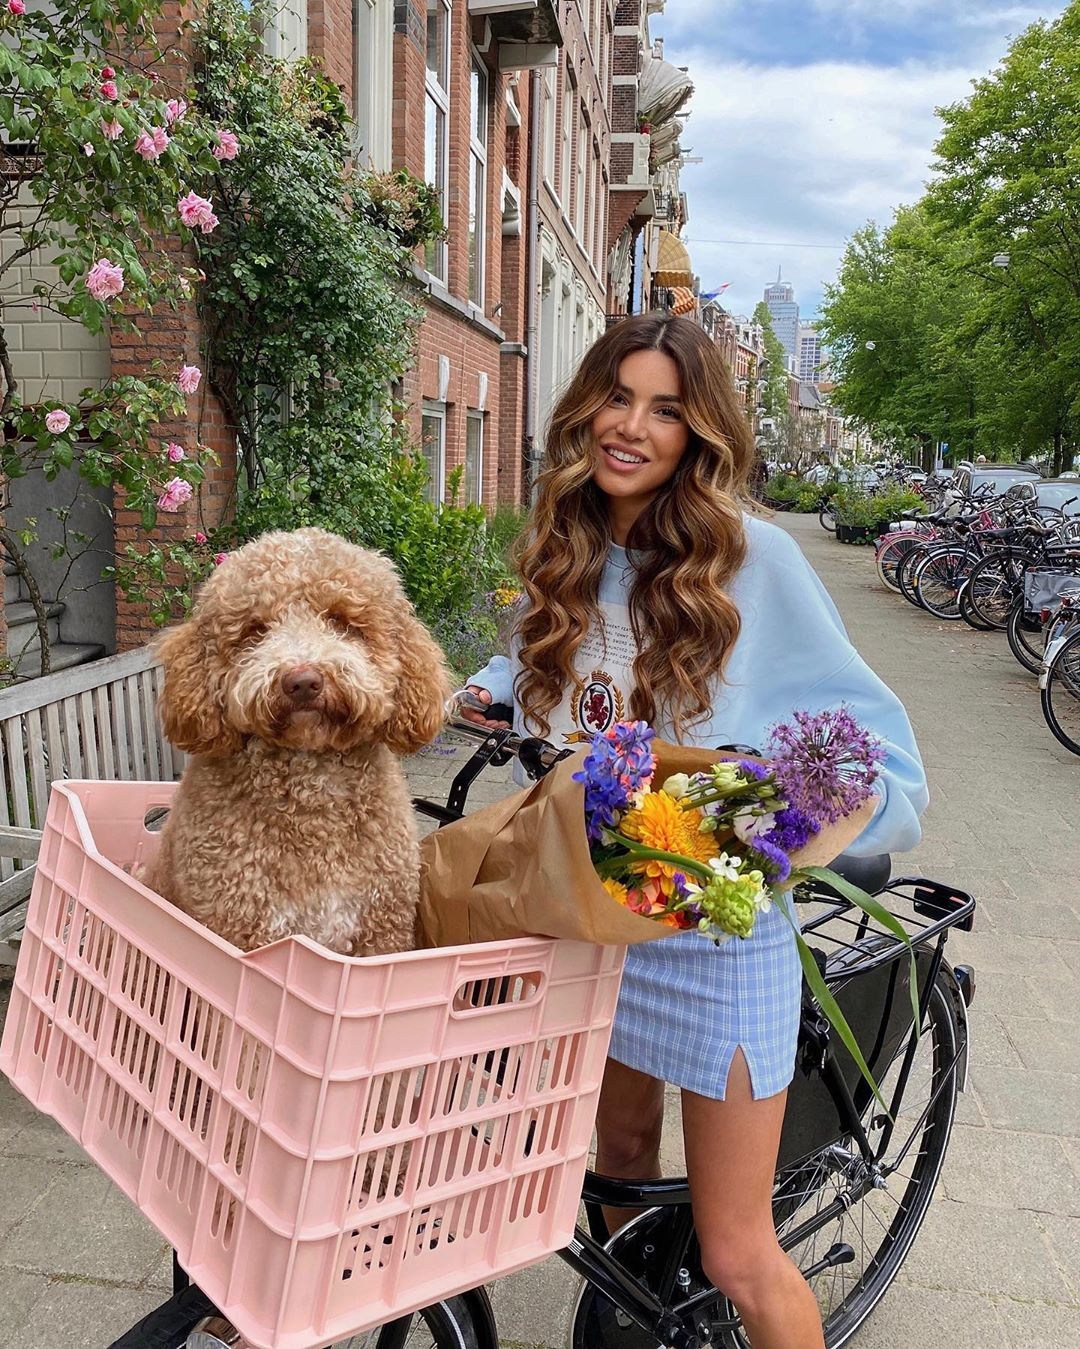 Negin Mirsalehi donning a Oversized sky blue sweatshirt with extra long sleeves, embroidered and a crew neck